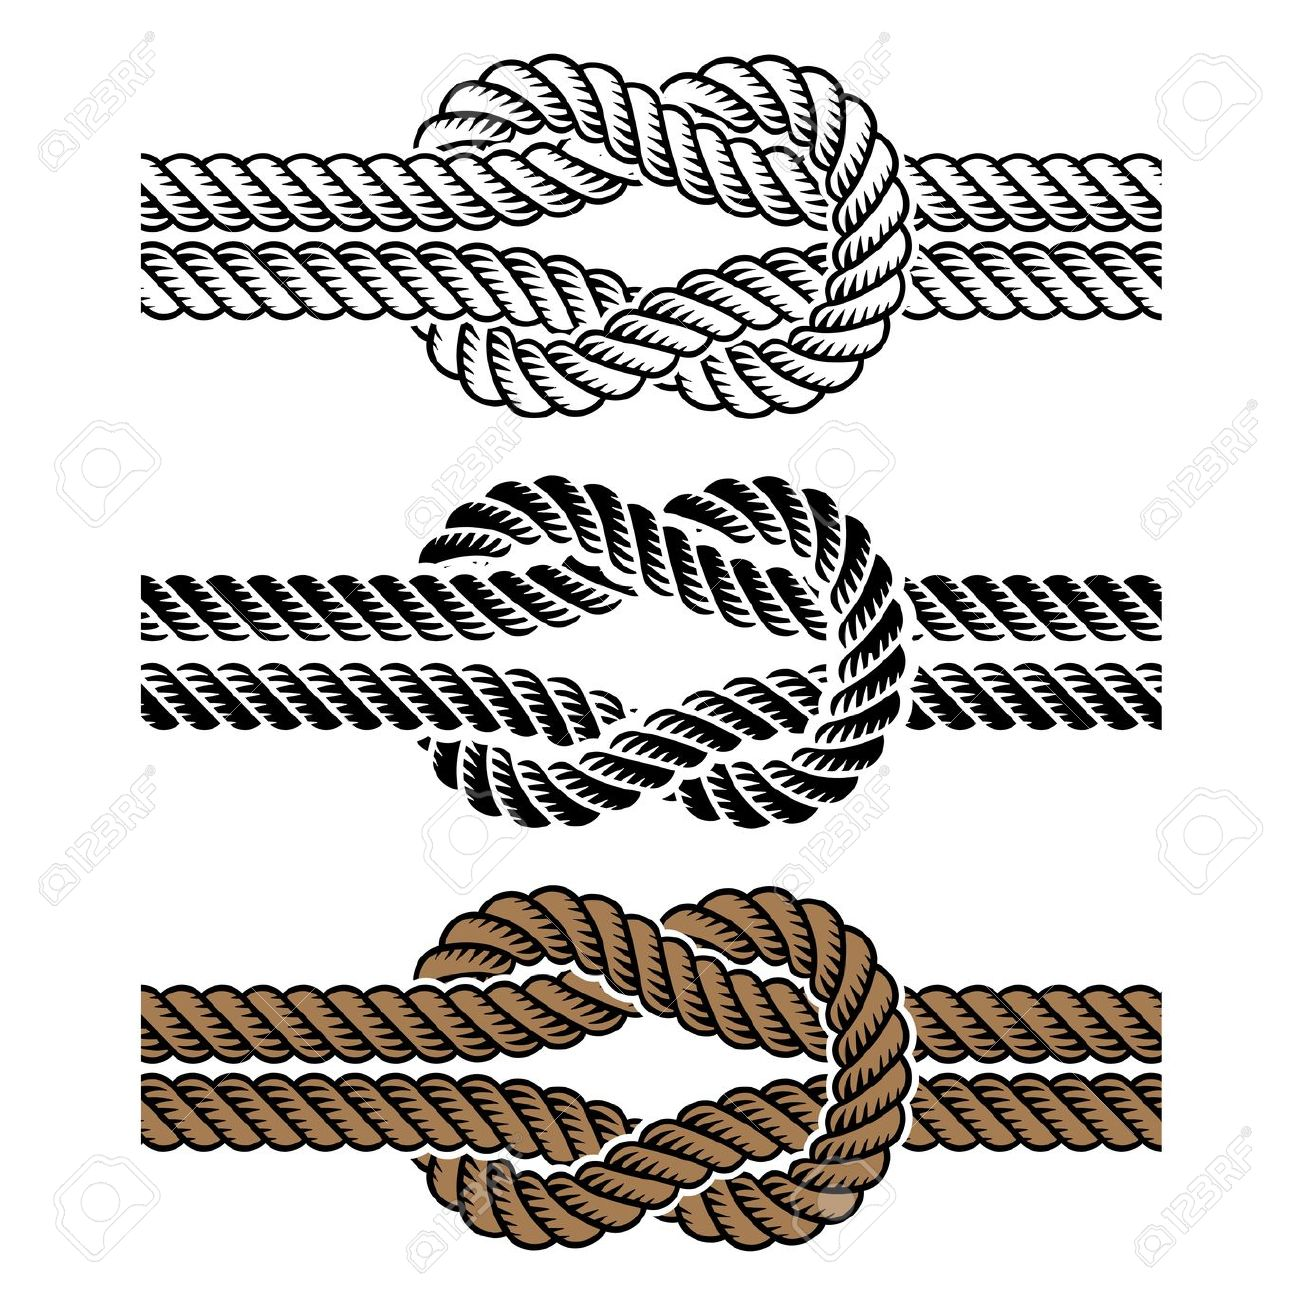 Square knot clipart - Clipground